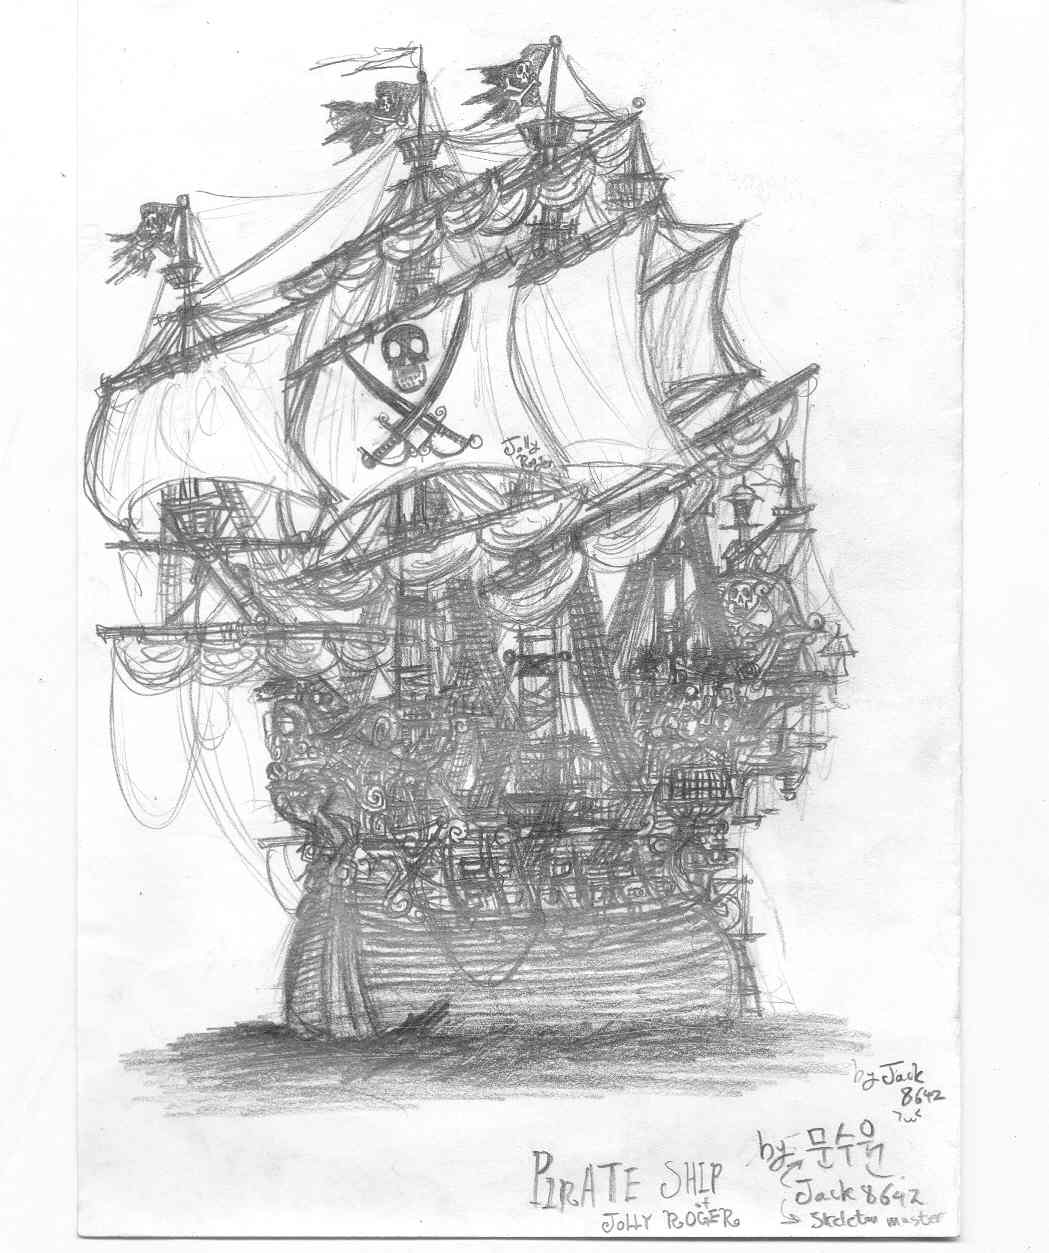 Drawn ship ghost Ship by Roger on Jolly